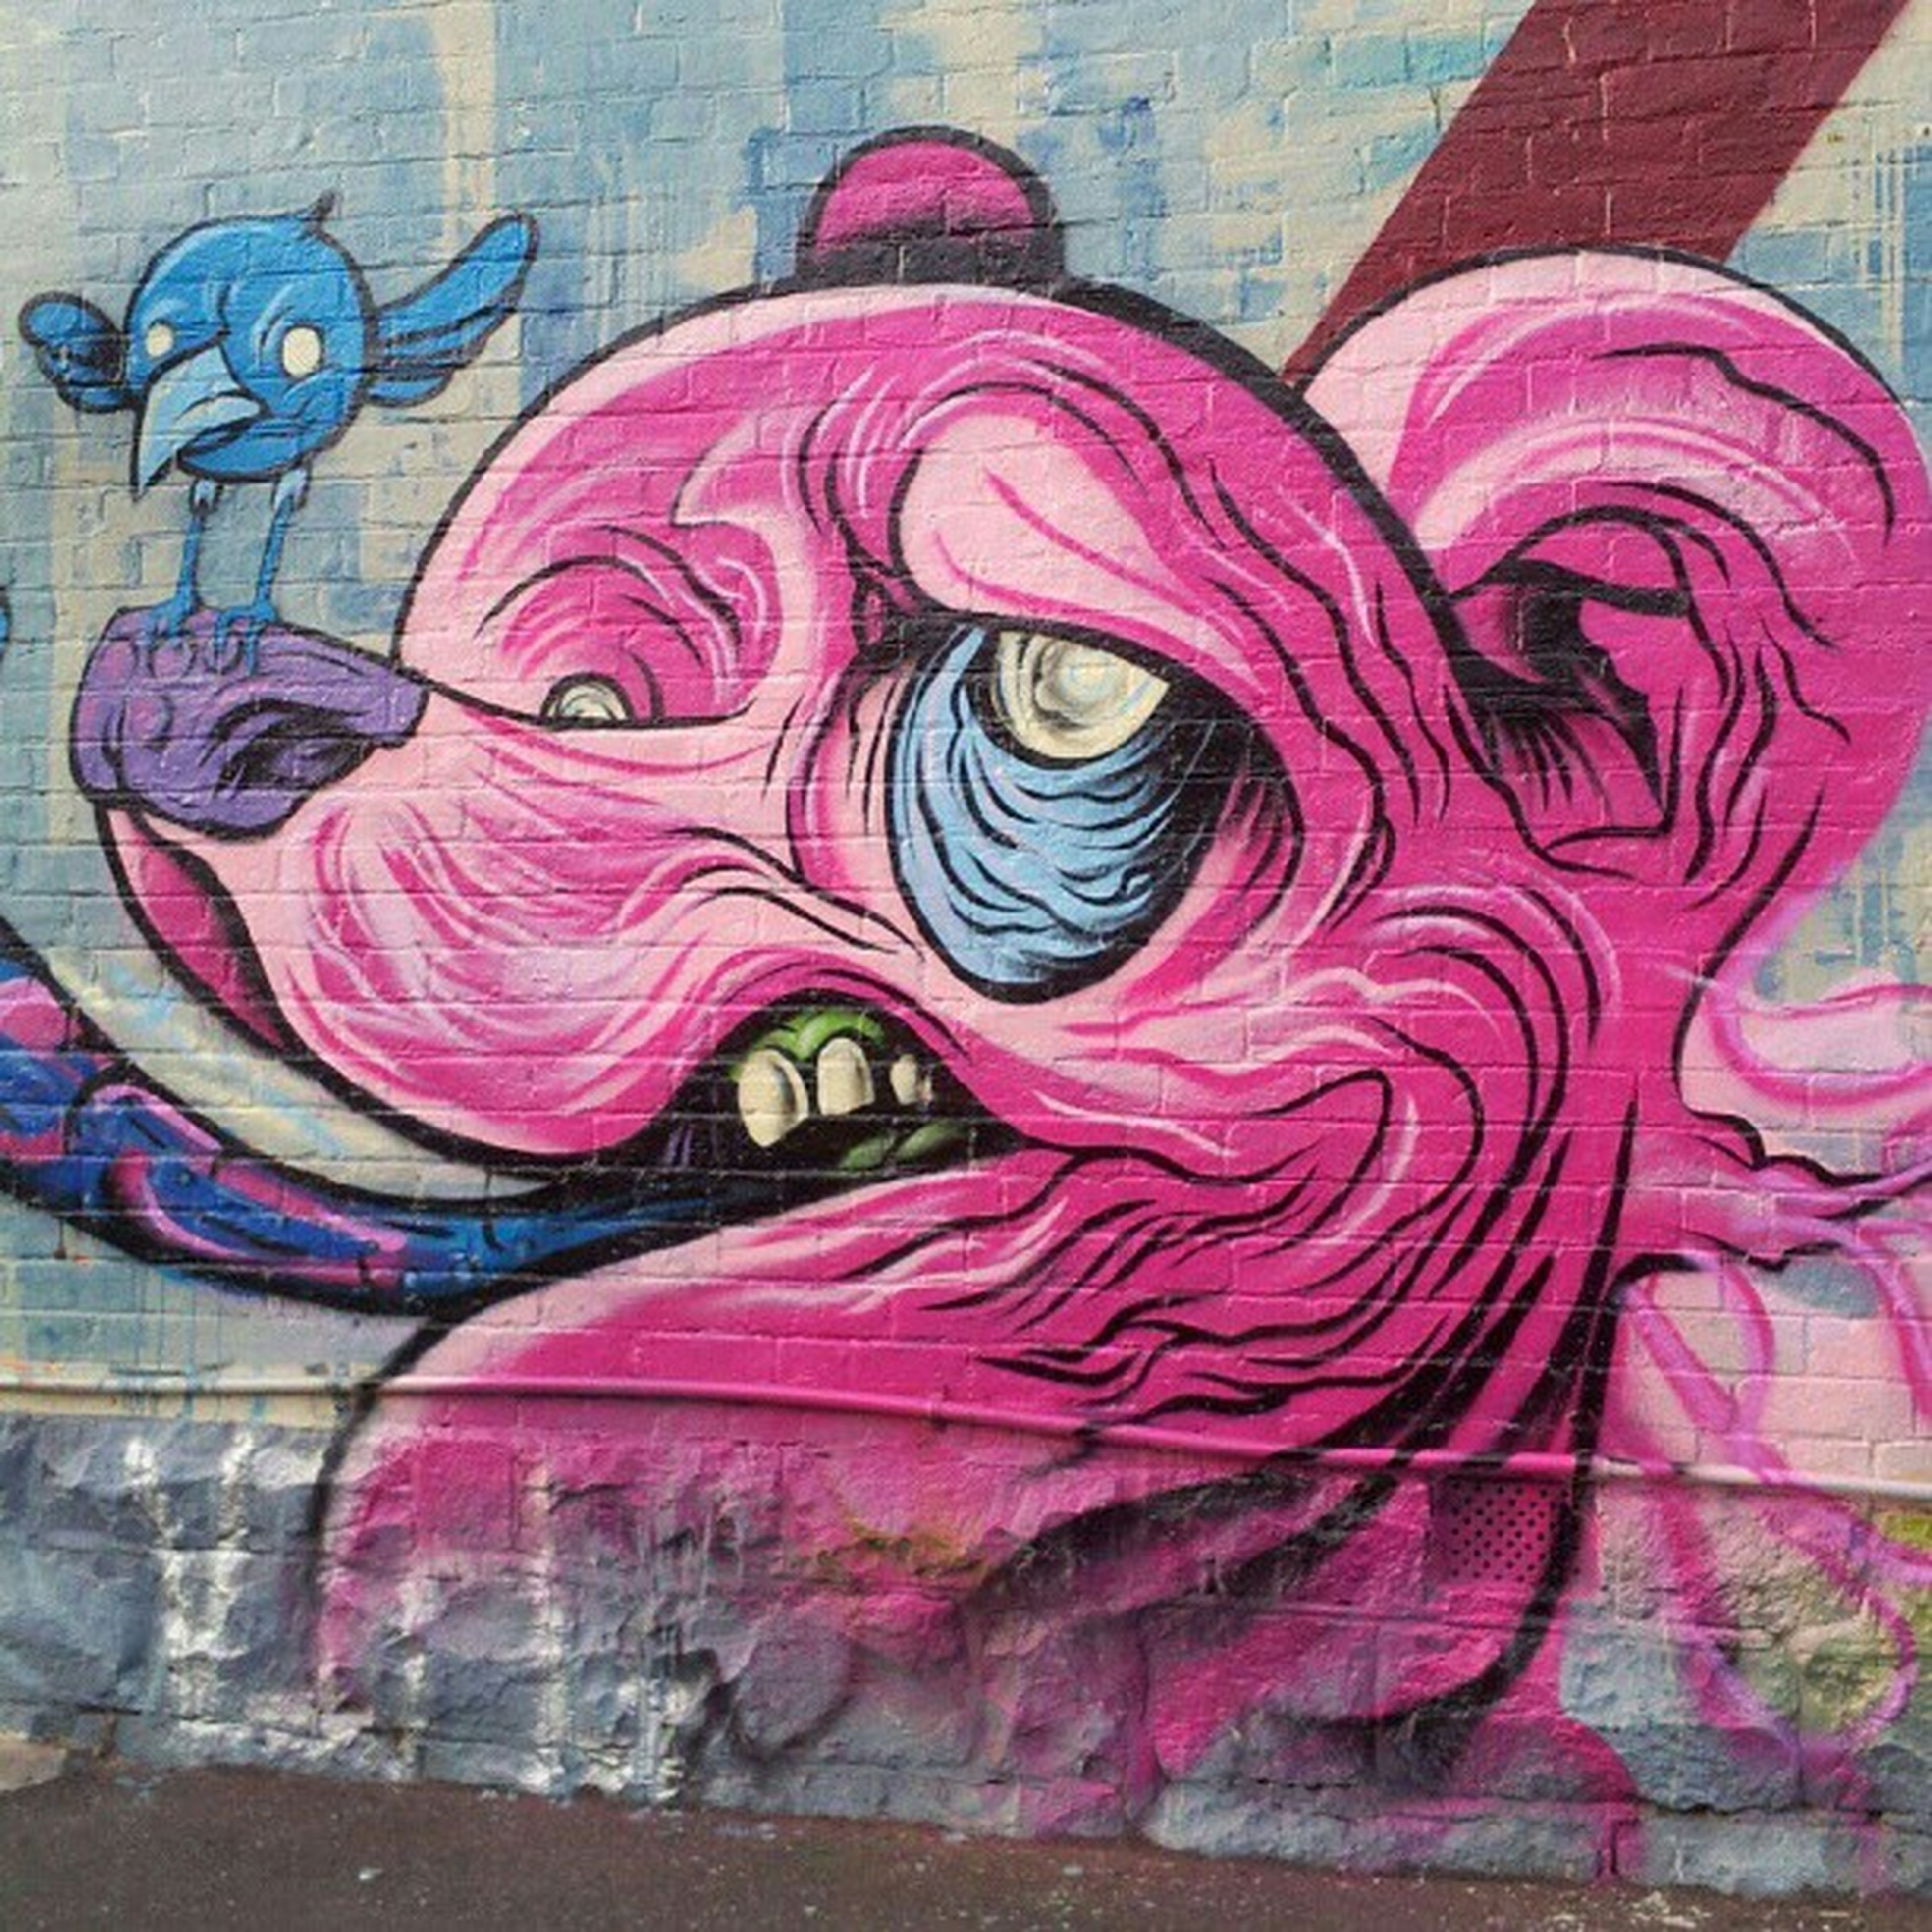 art and craft, art, creativity, multi colored, indoors, design, pattern, floral pattern, wall - building feature, decoration, craft, human representation, animal representation, graffiti, ornate, textile, fabric, no people, mural, full frame